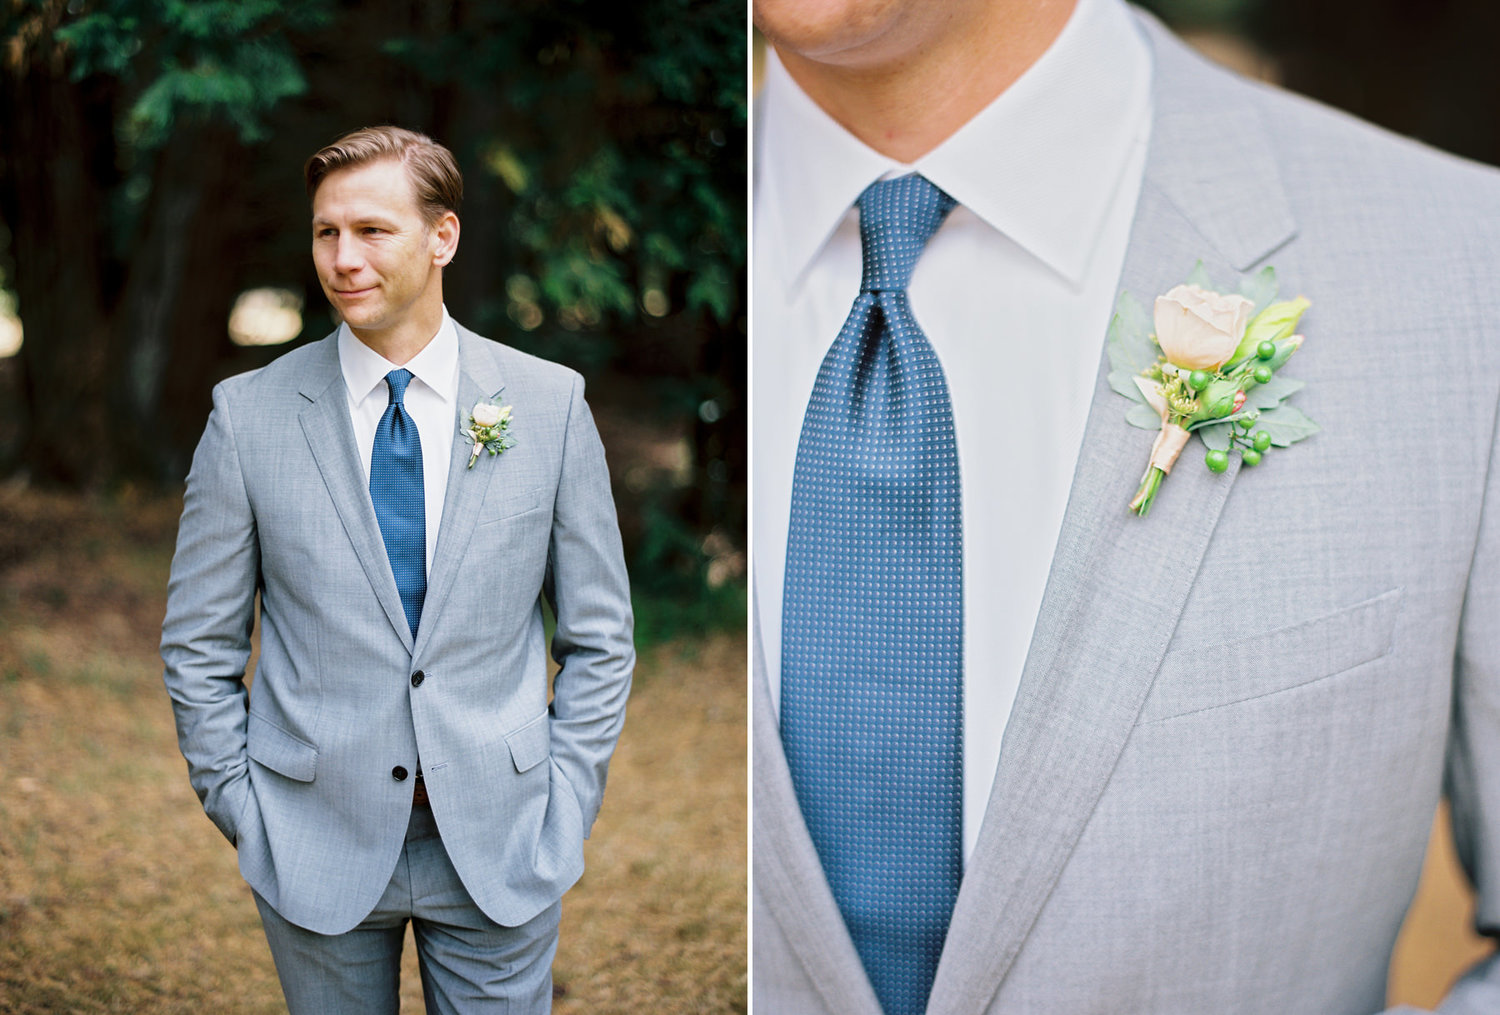 Stunning Suit Groom Wedding Ideas - Wedding Ideas - memiocall.com